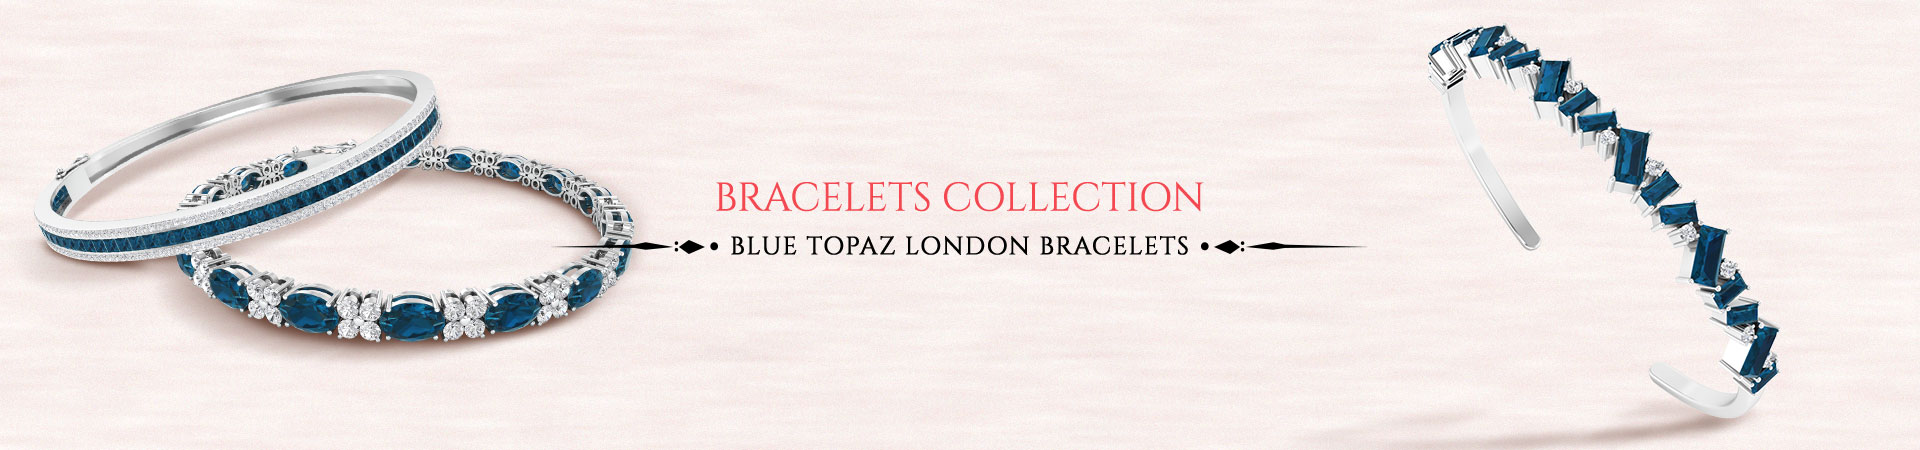 Blue Topaz London Bracelet